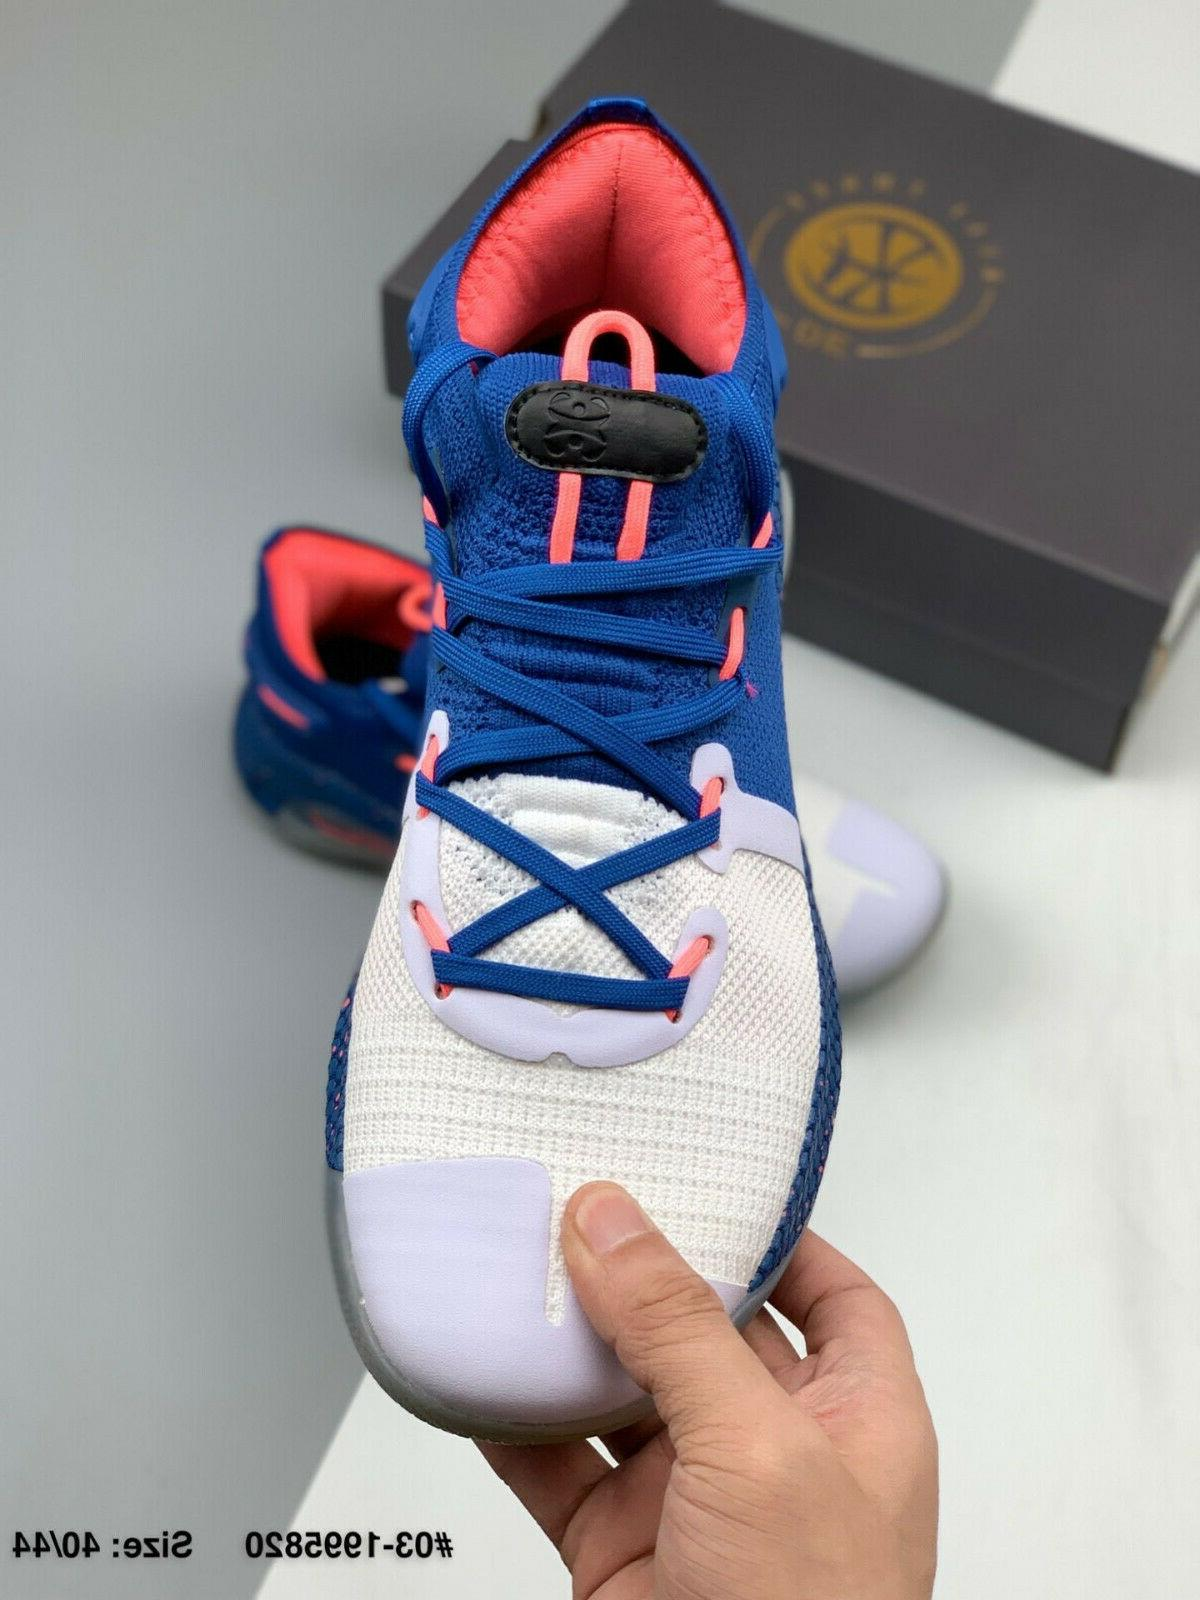 Under Armour Curry 6th generation basketball